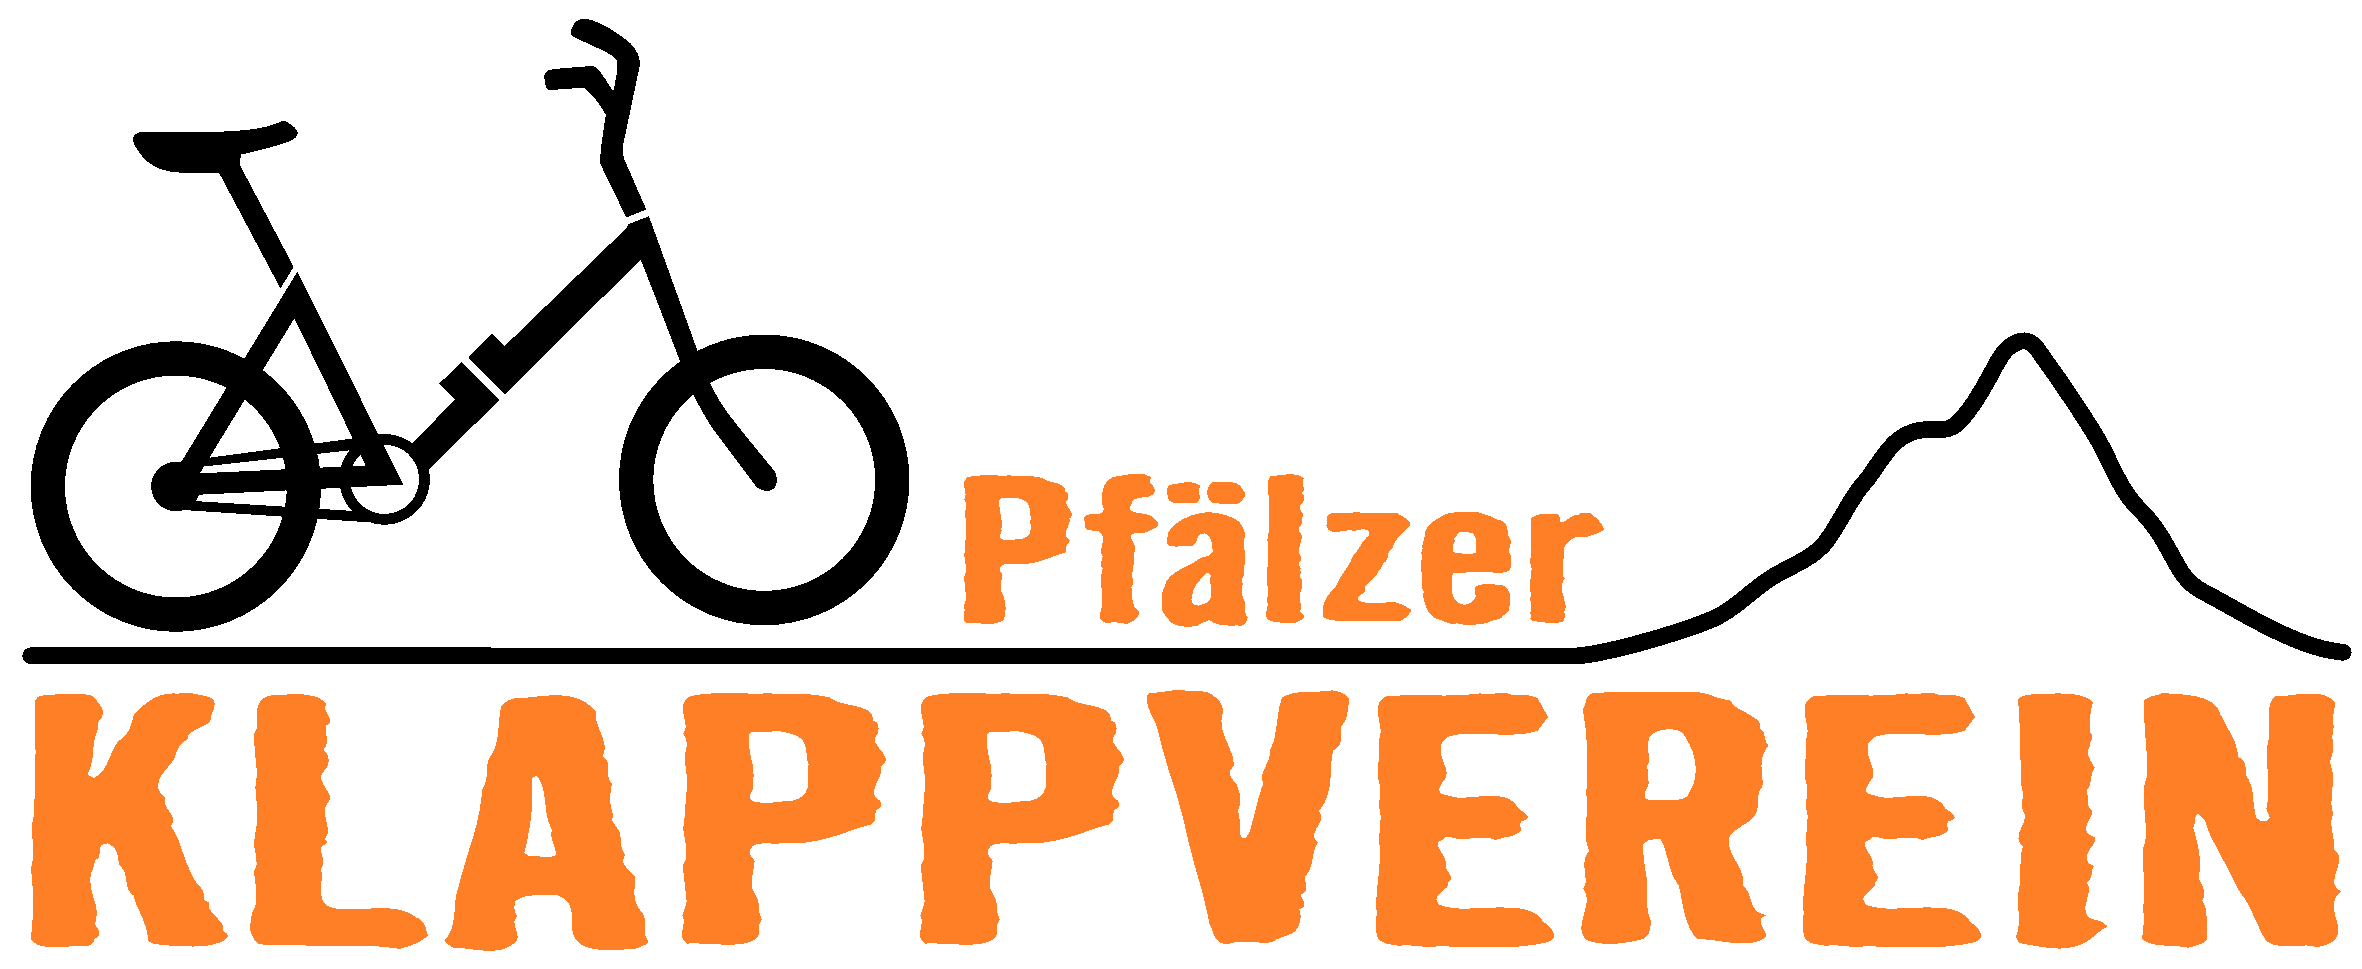 Logo Pfaelzer Klappverein orange schwarz